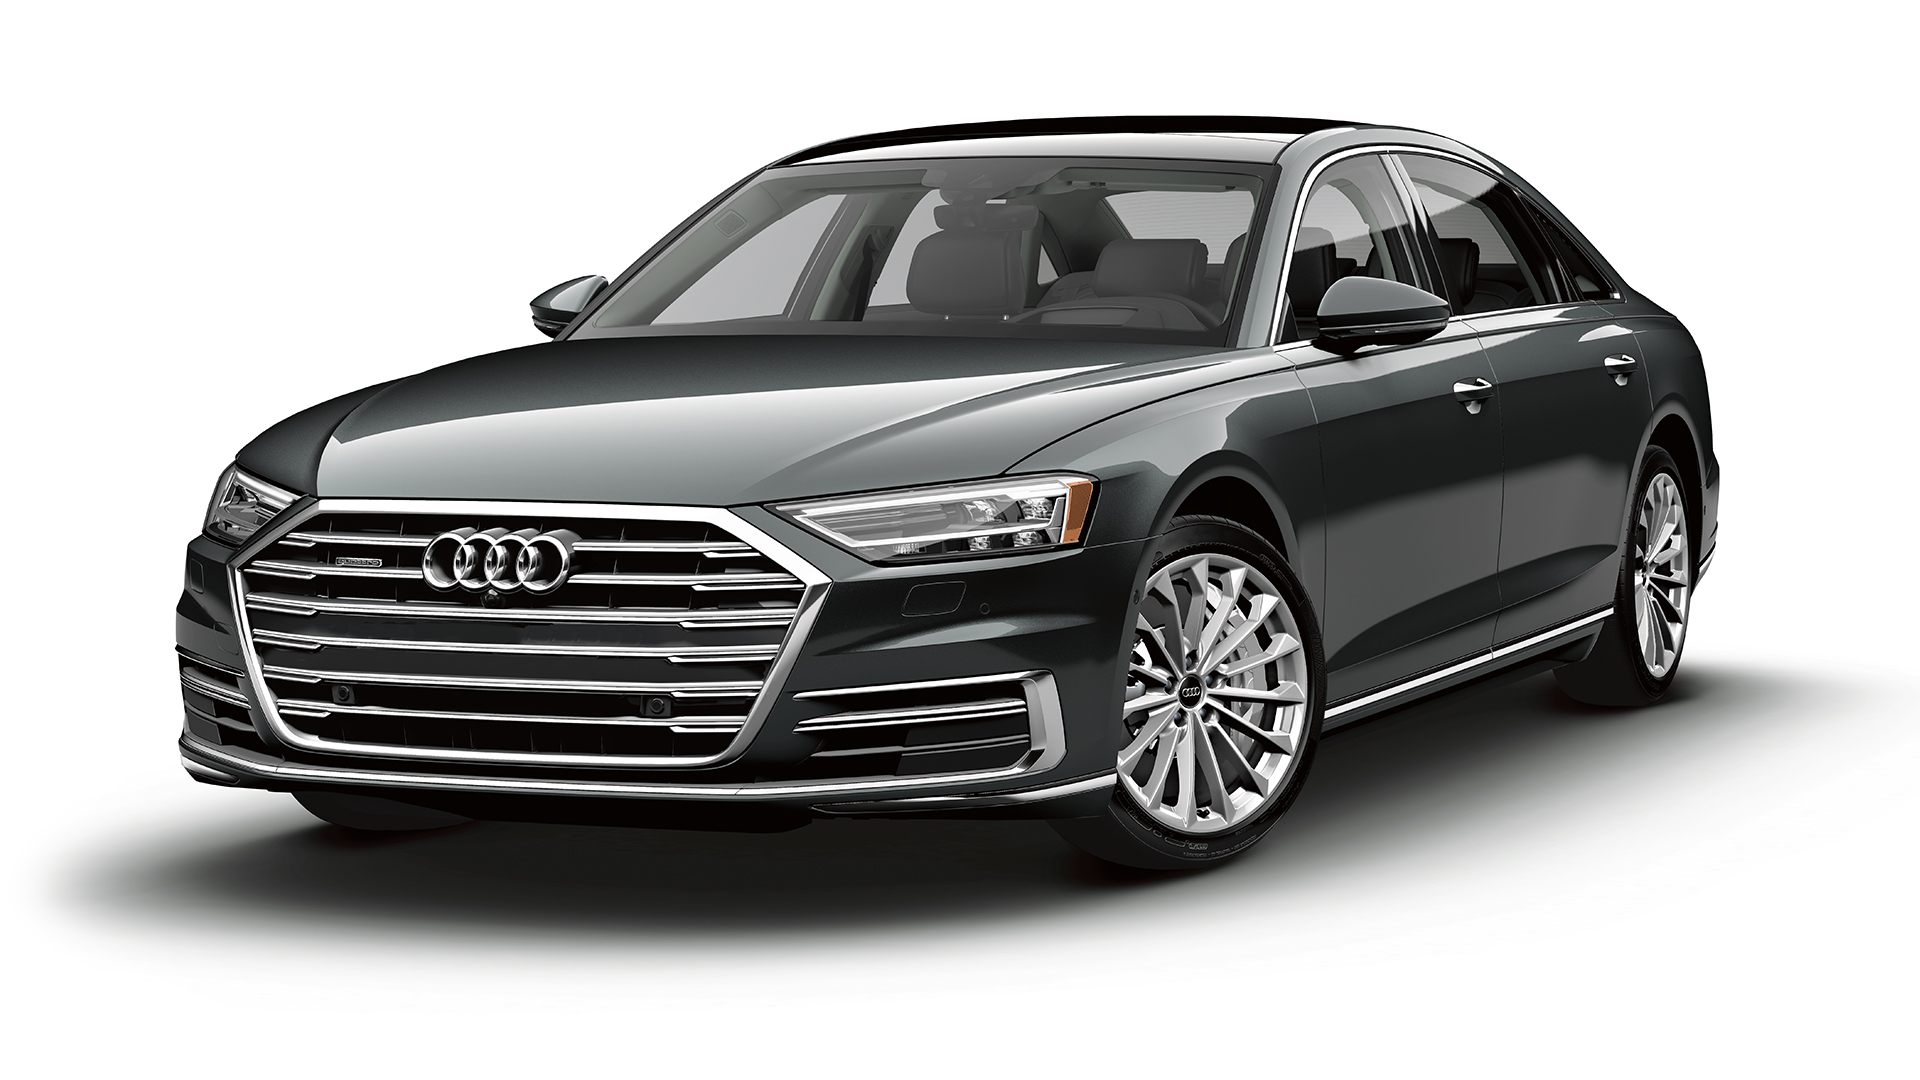 16 All New Audi A8 New Model and Performance